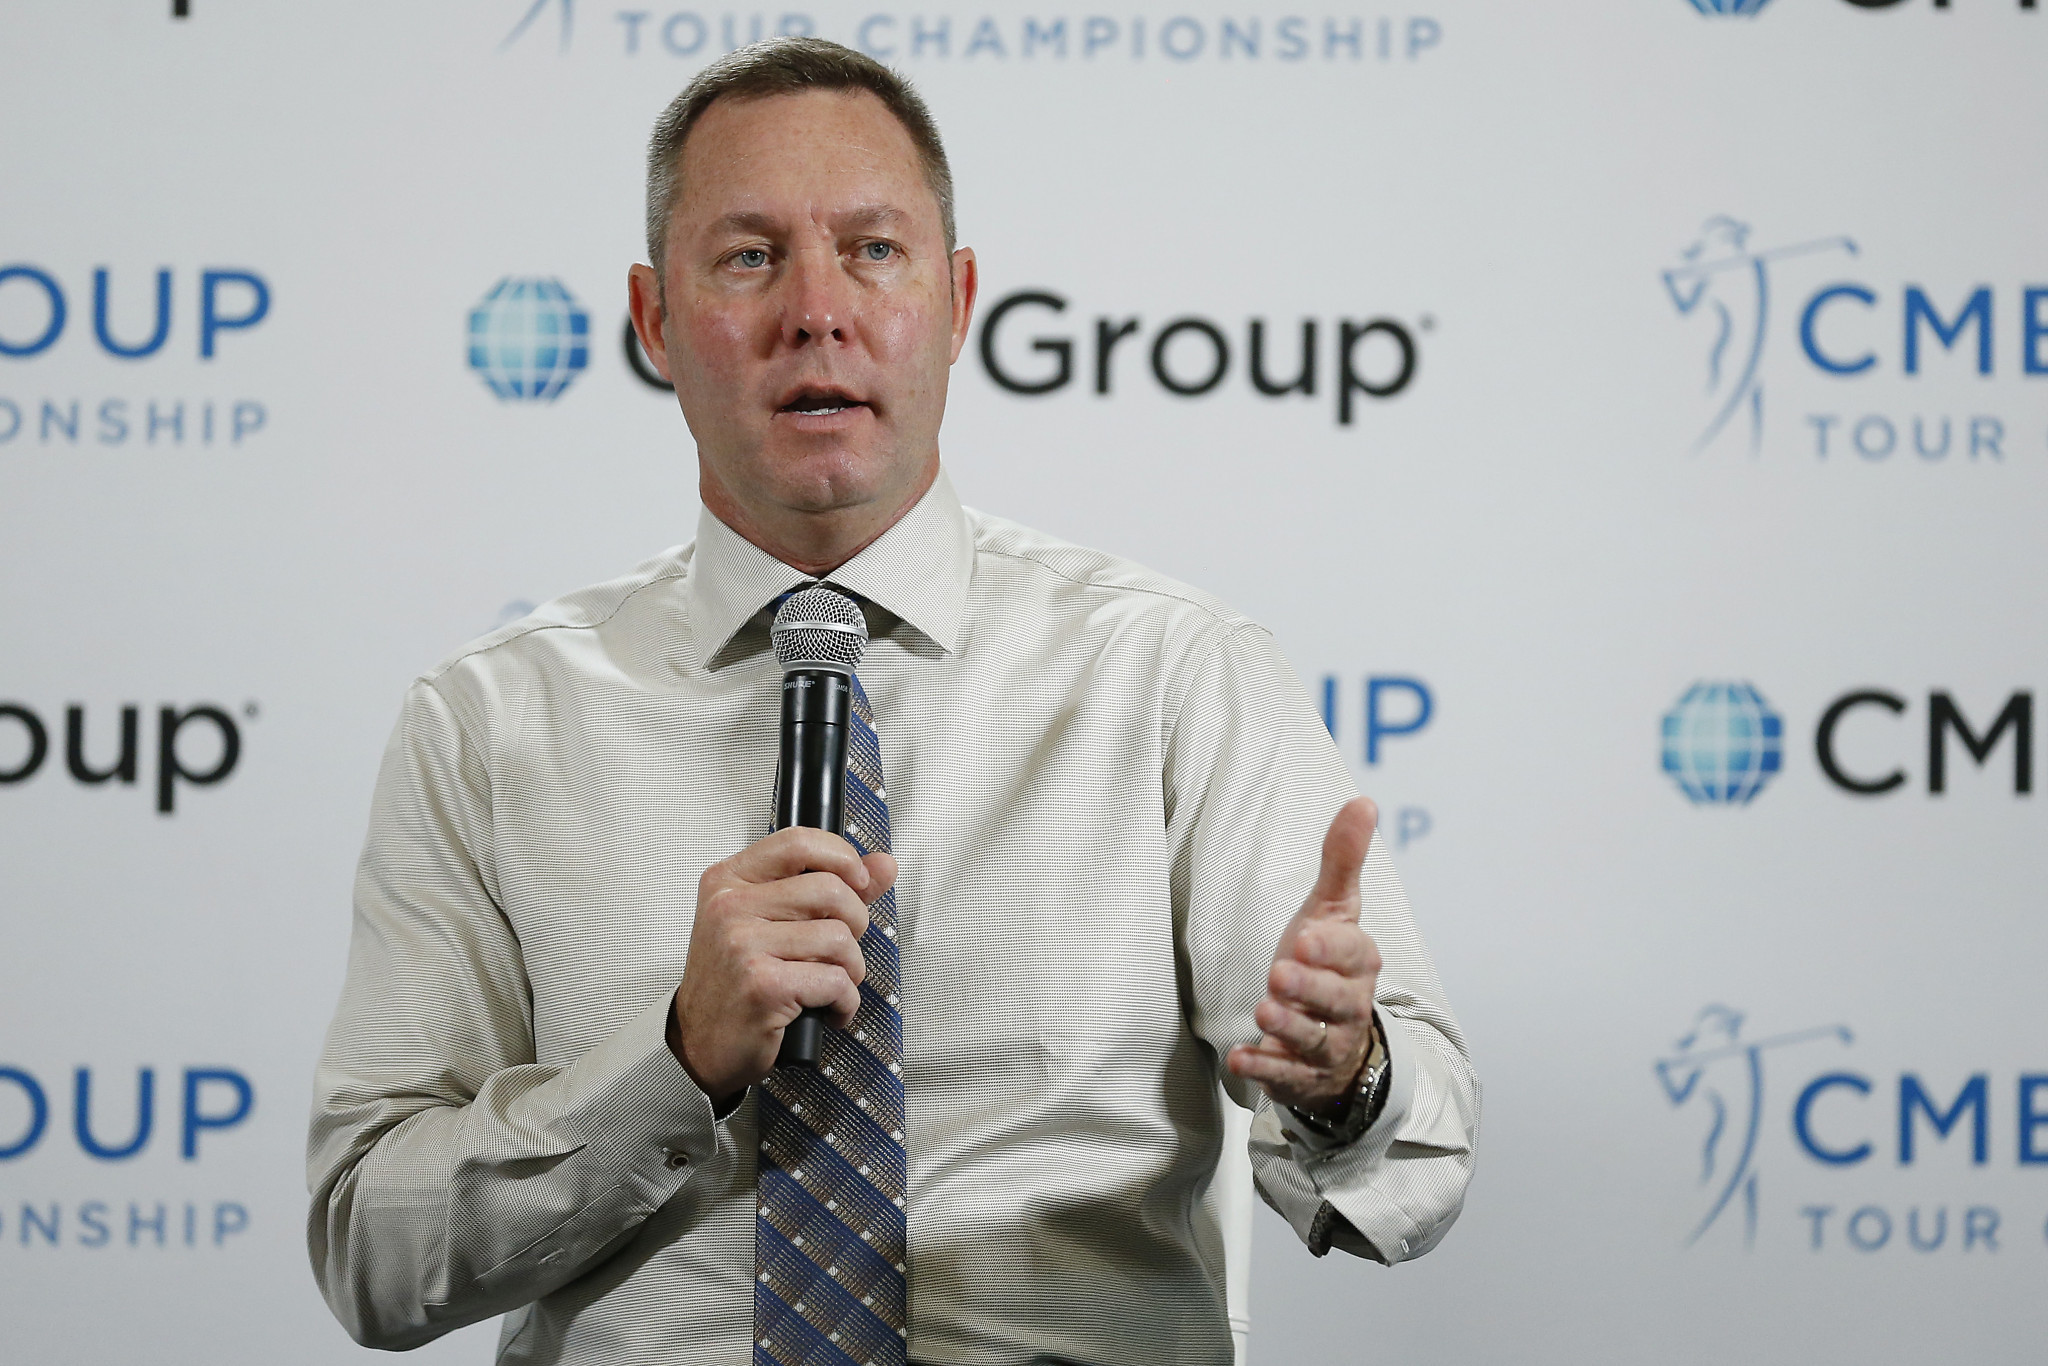 LPGA commissioner Whan to step down in 2021 after 11 years in role